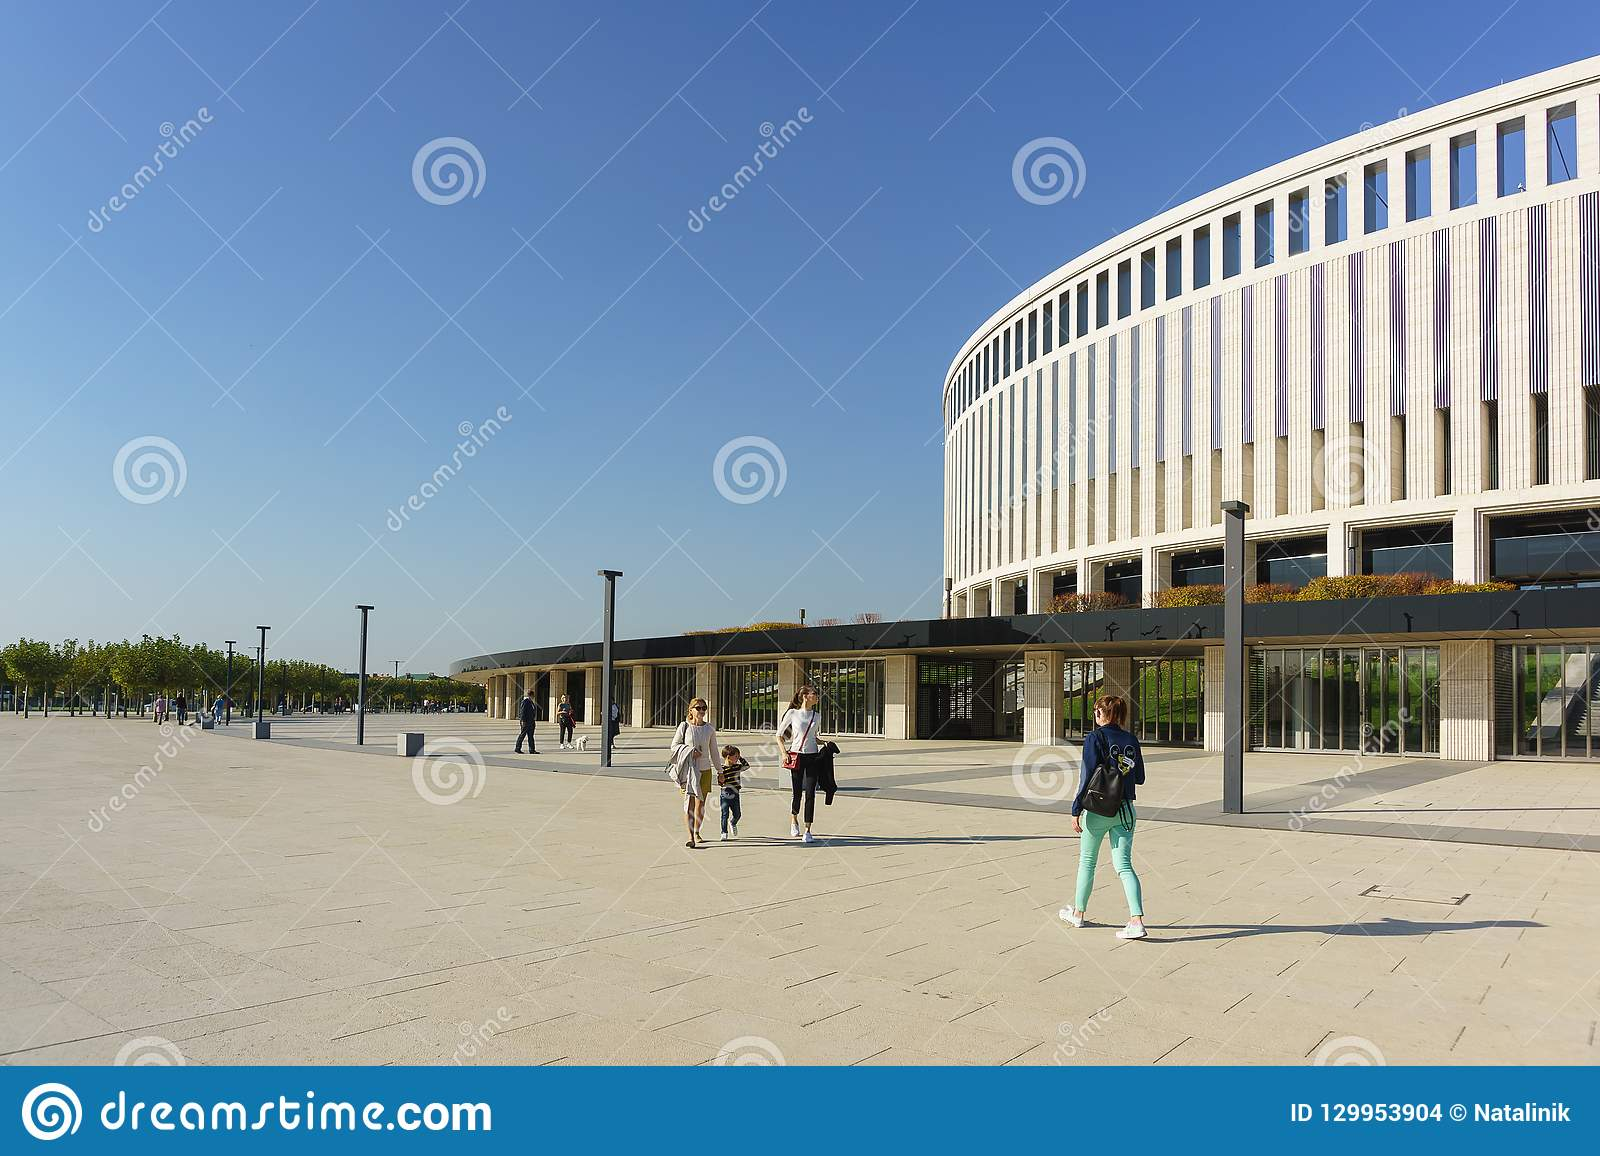 People walk past the modern capacious stadium of FC Krasnodar on a Sunny day. A large area in front of the building is designed fo